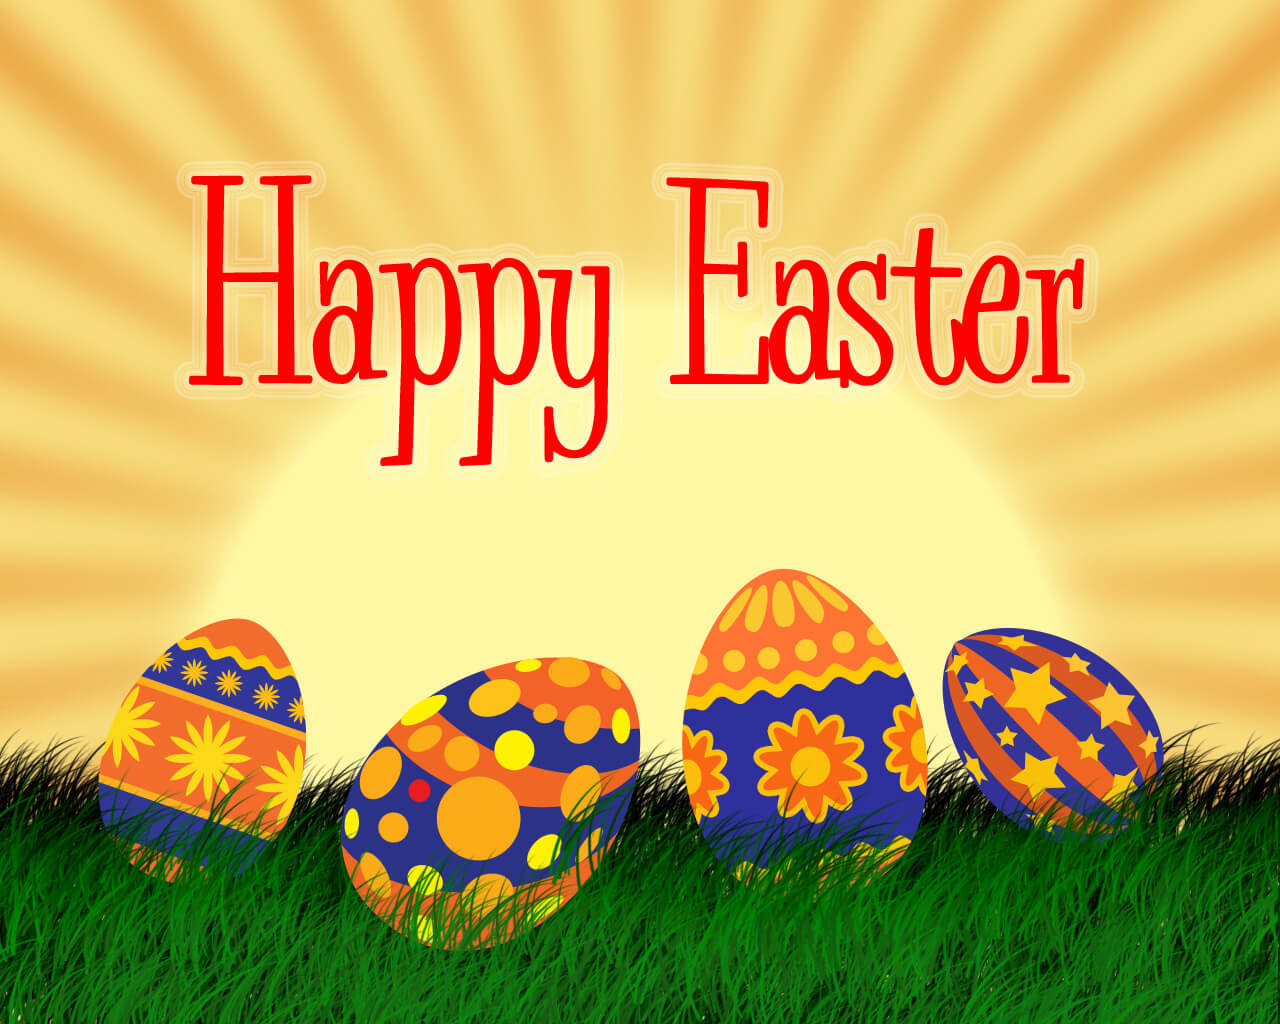 sacred heart secondary school wishes the school community a happy easter sacred heart secondary school